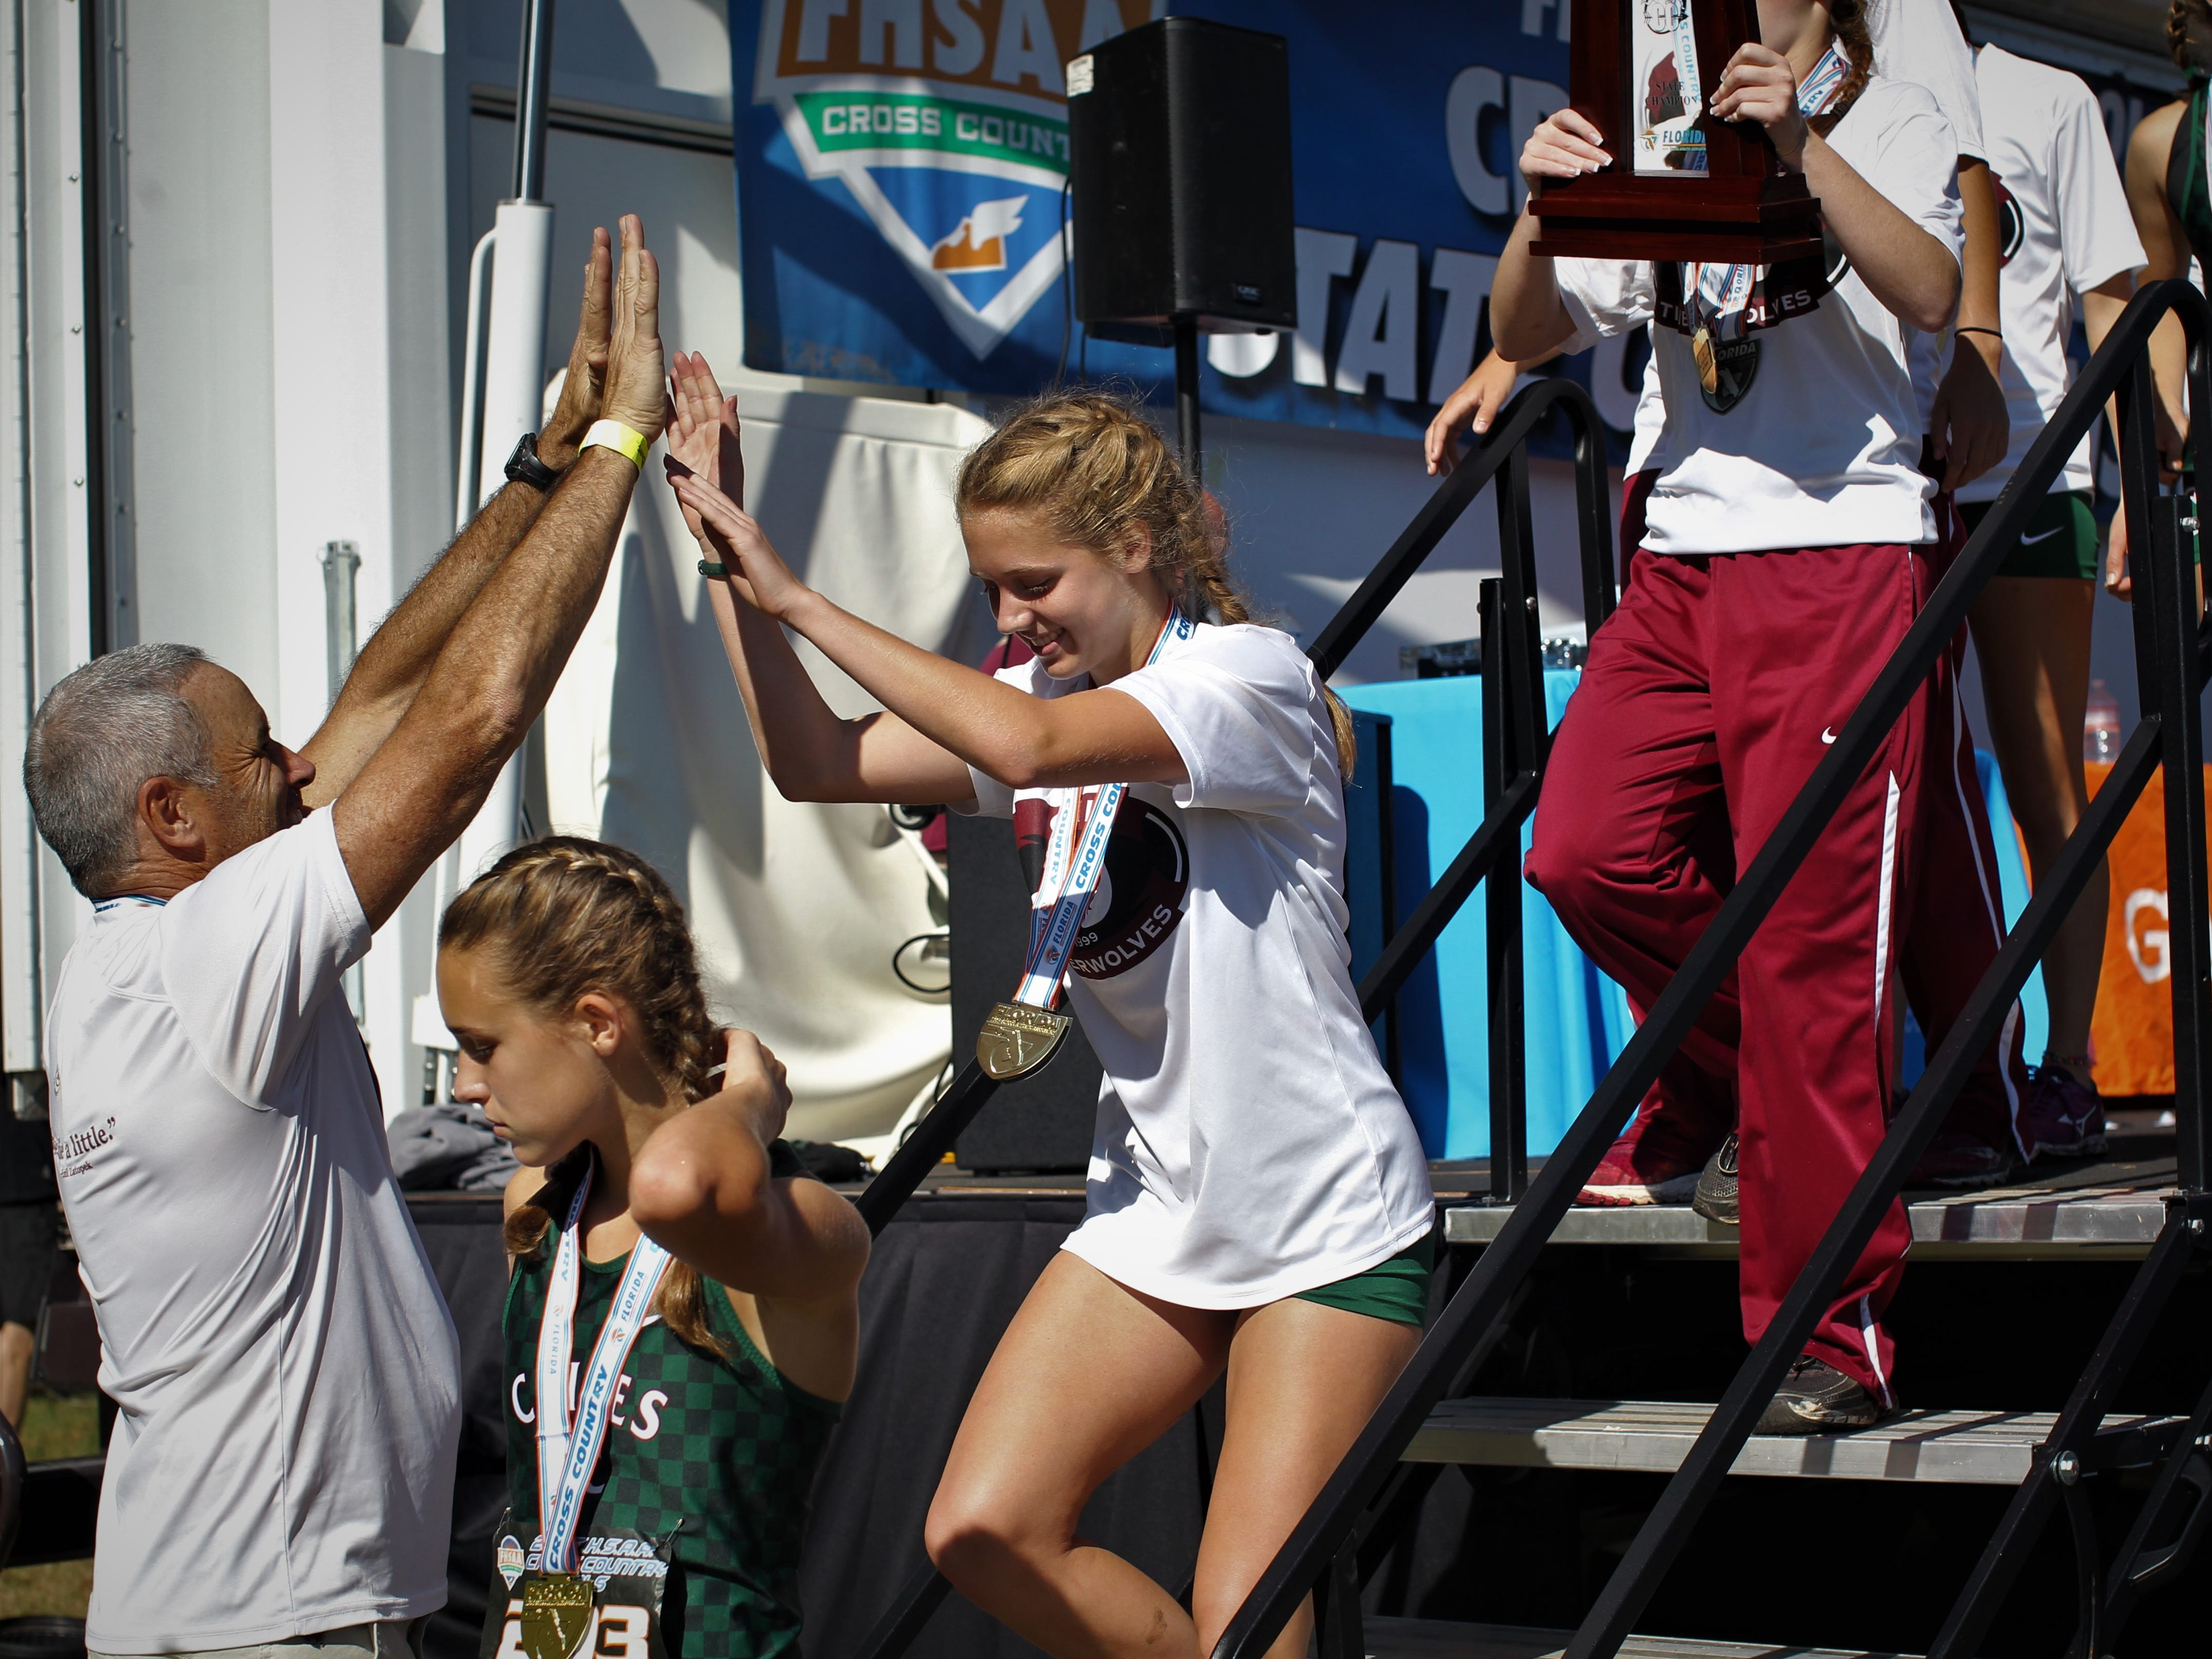 Chiles' girls cross country team celebrates a Class 3A state championship at the FHSAA Cross Country State Championships at Apalachee Regional Park on Saturday, Nov. 10, 2018.